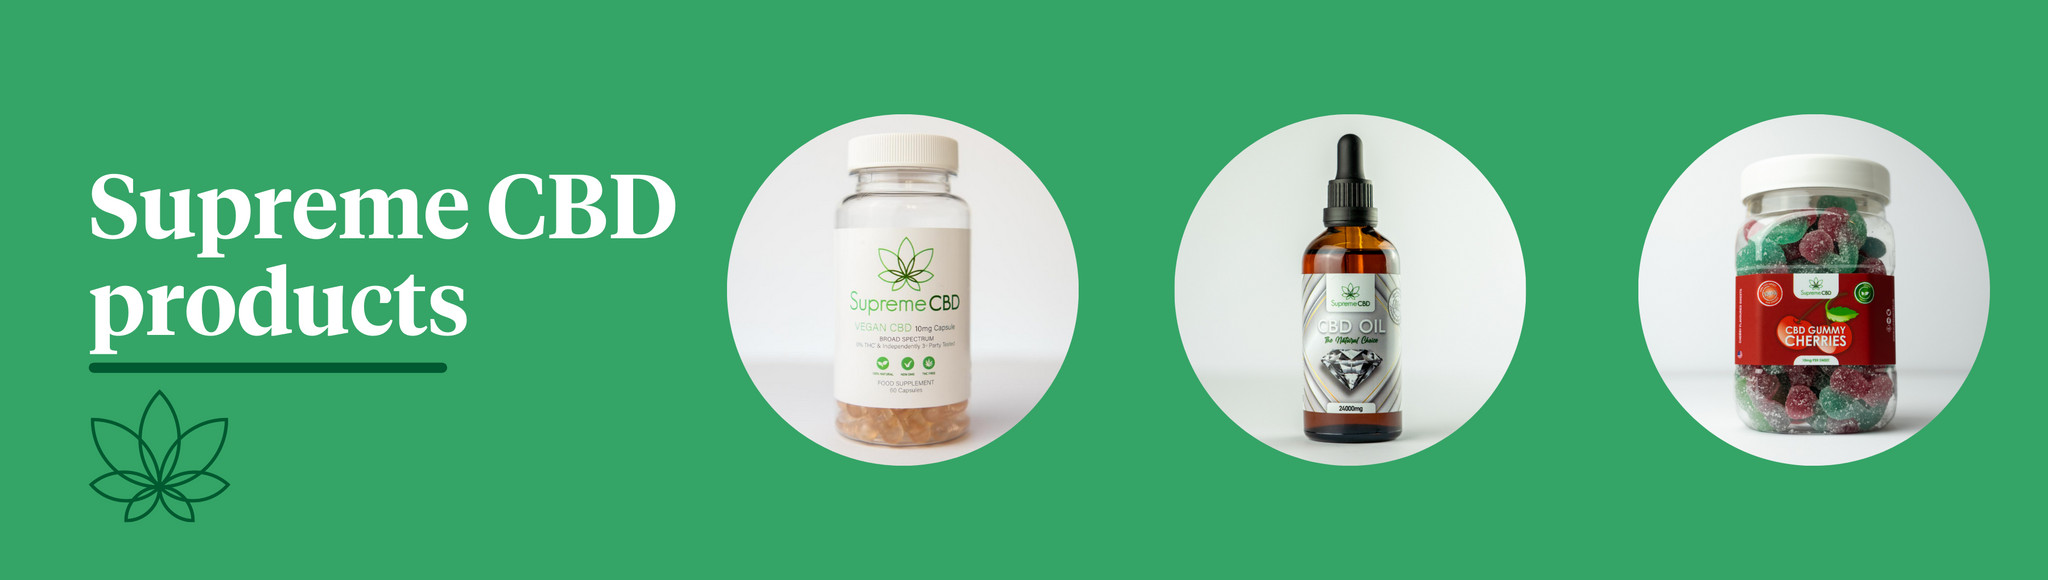 A green background showcasing three highly regarded products by Supreme CBD, the Supreme CBD capsules, the Supreme CBD oil and the Supreme CBD gummies.